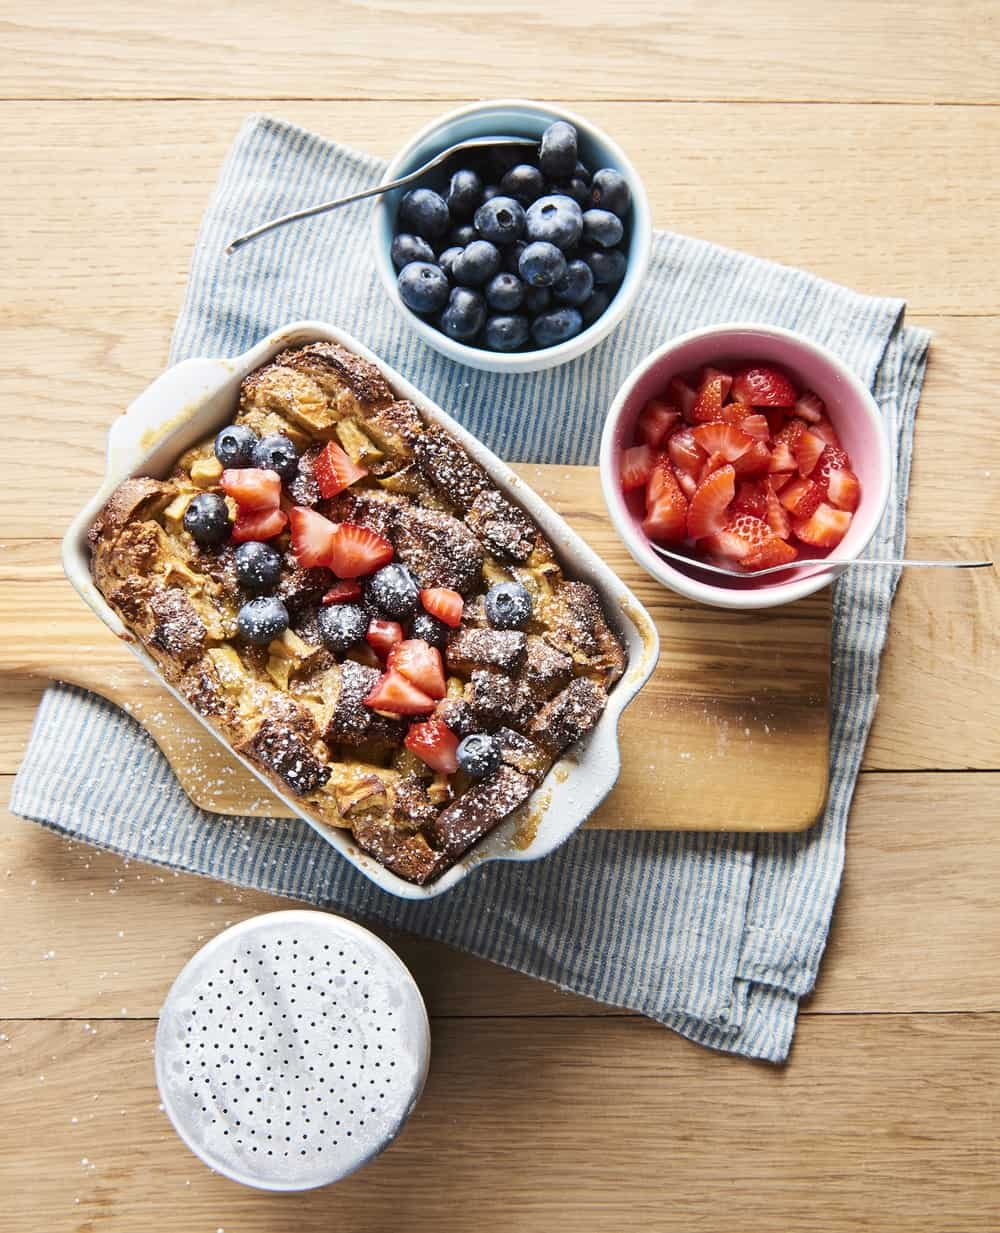 french toast bread pudding served with fresh berries, top view